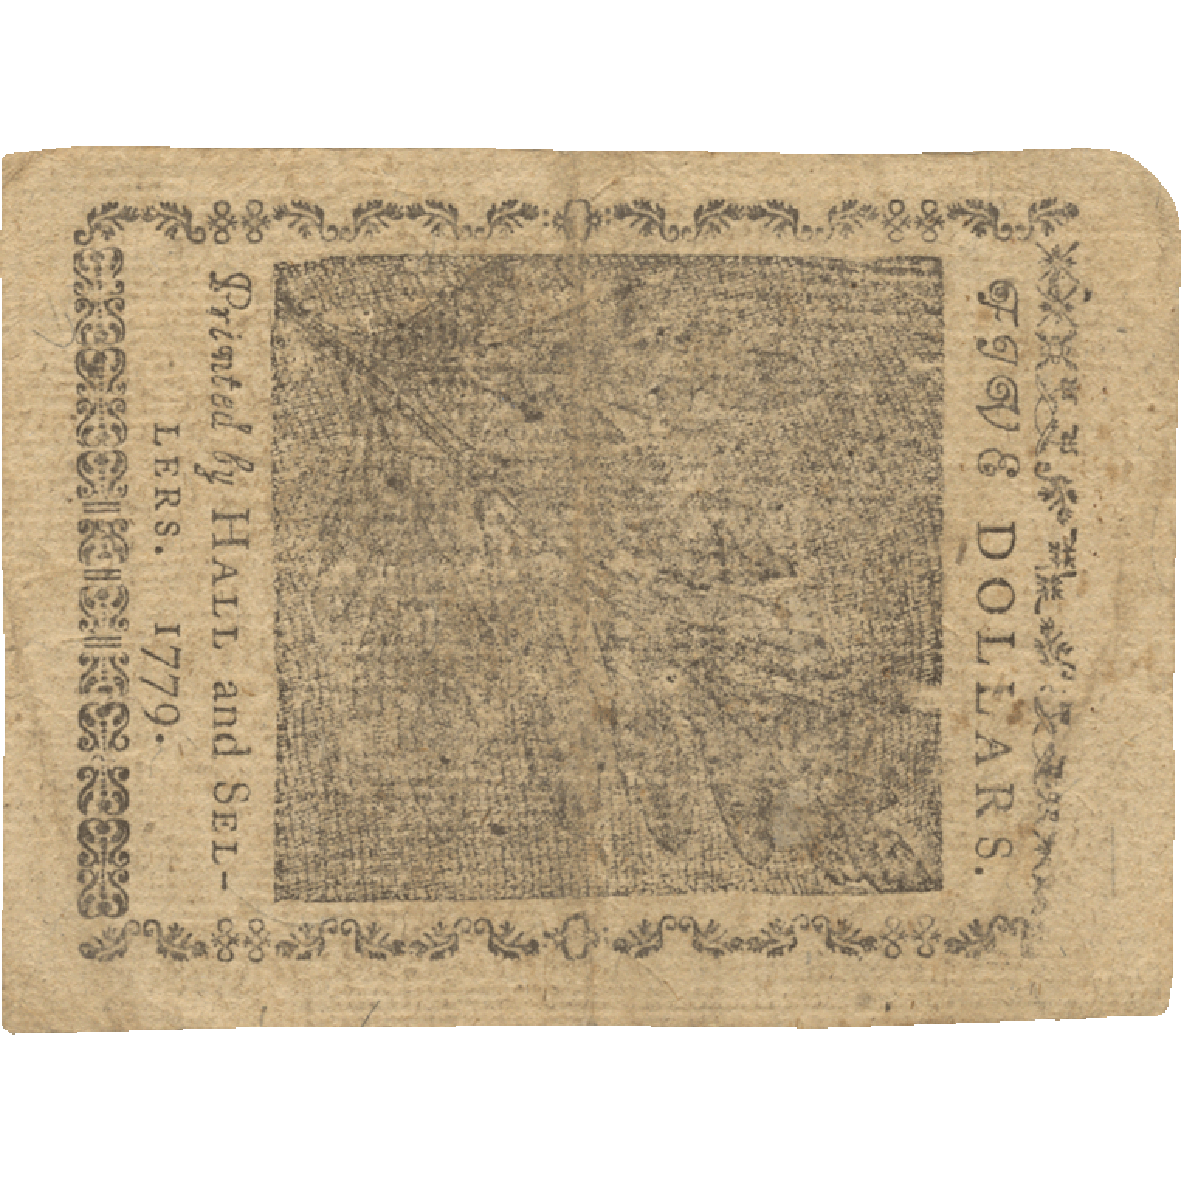 United States of America, 5 Dollars 1779 (reverse)